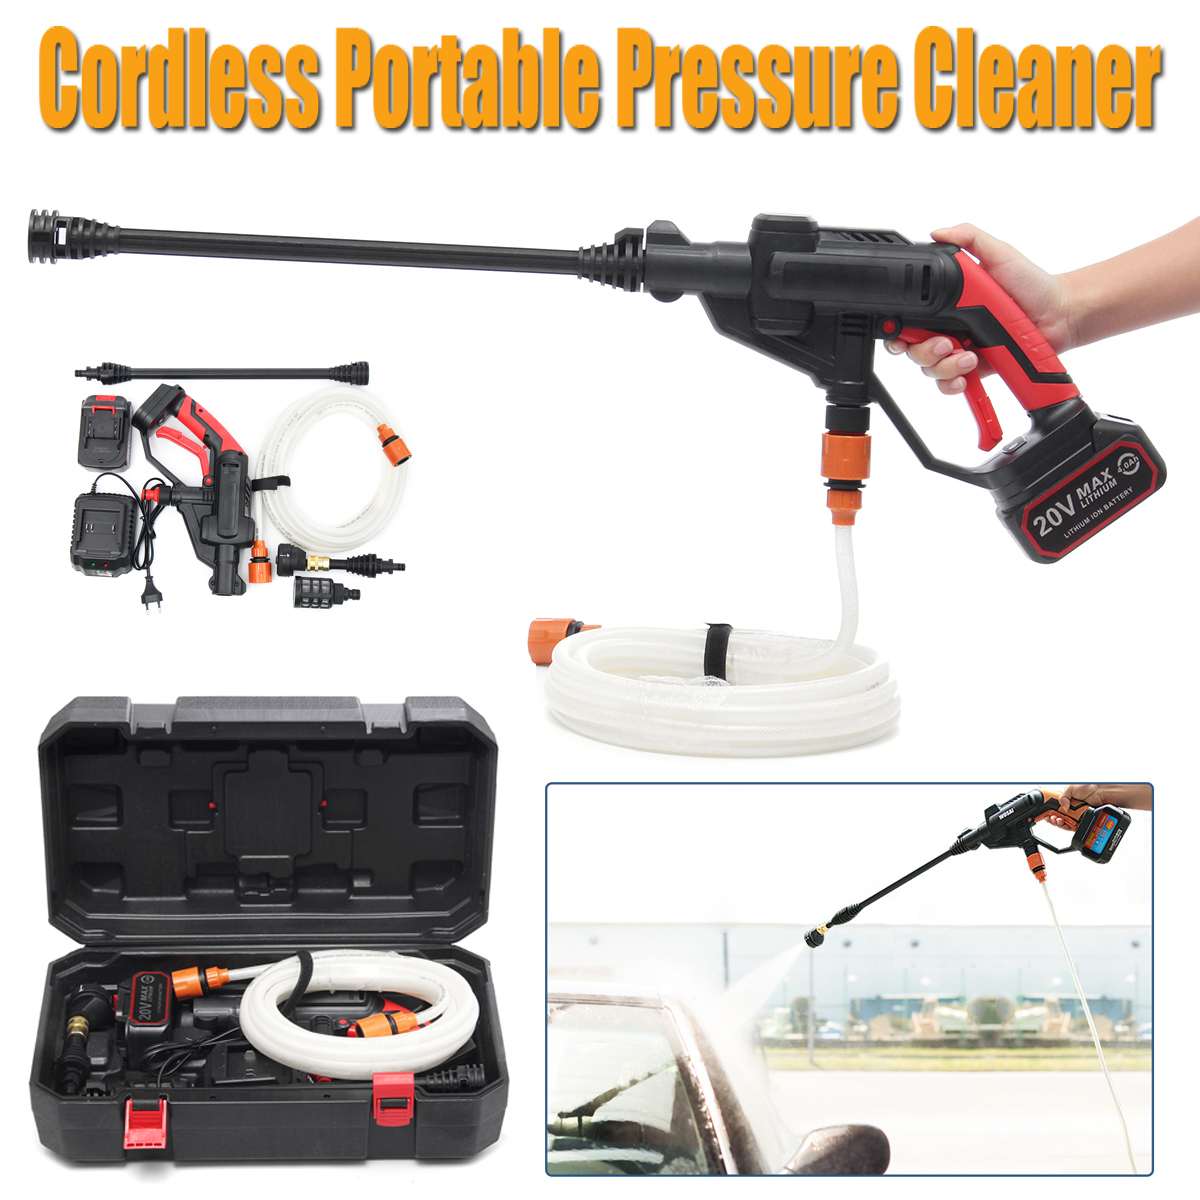 20V Li-ion Battery Cordless Hydroshot Portable Power Cleaner Pressure Washer Cleaner Gun